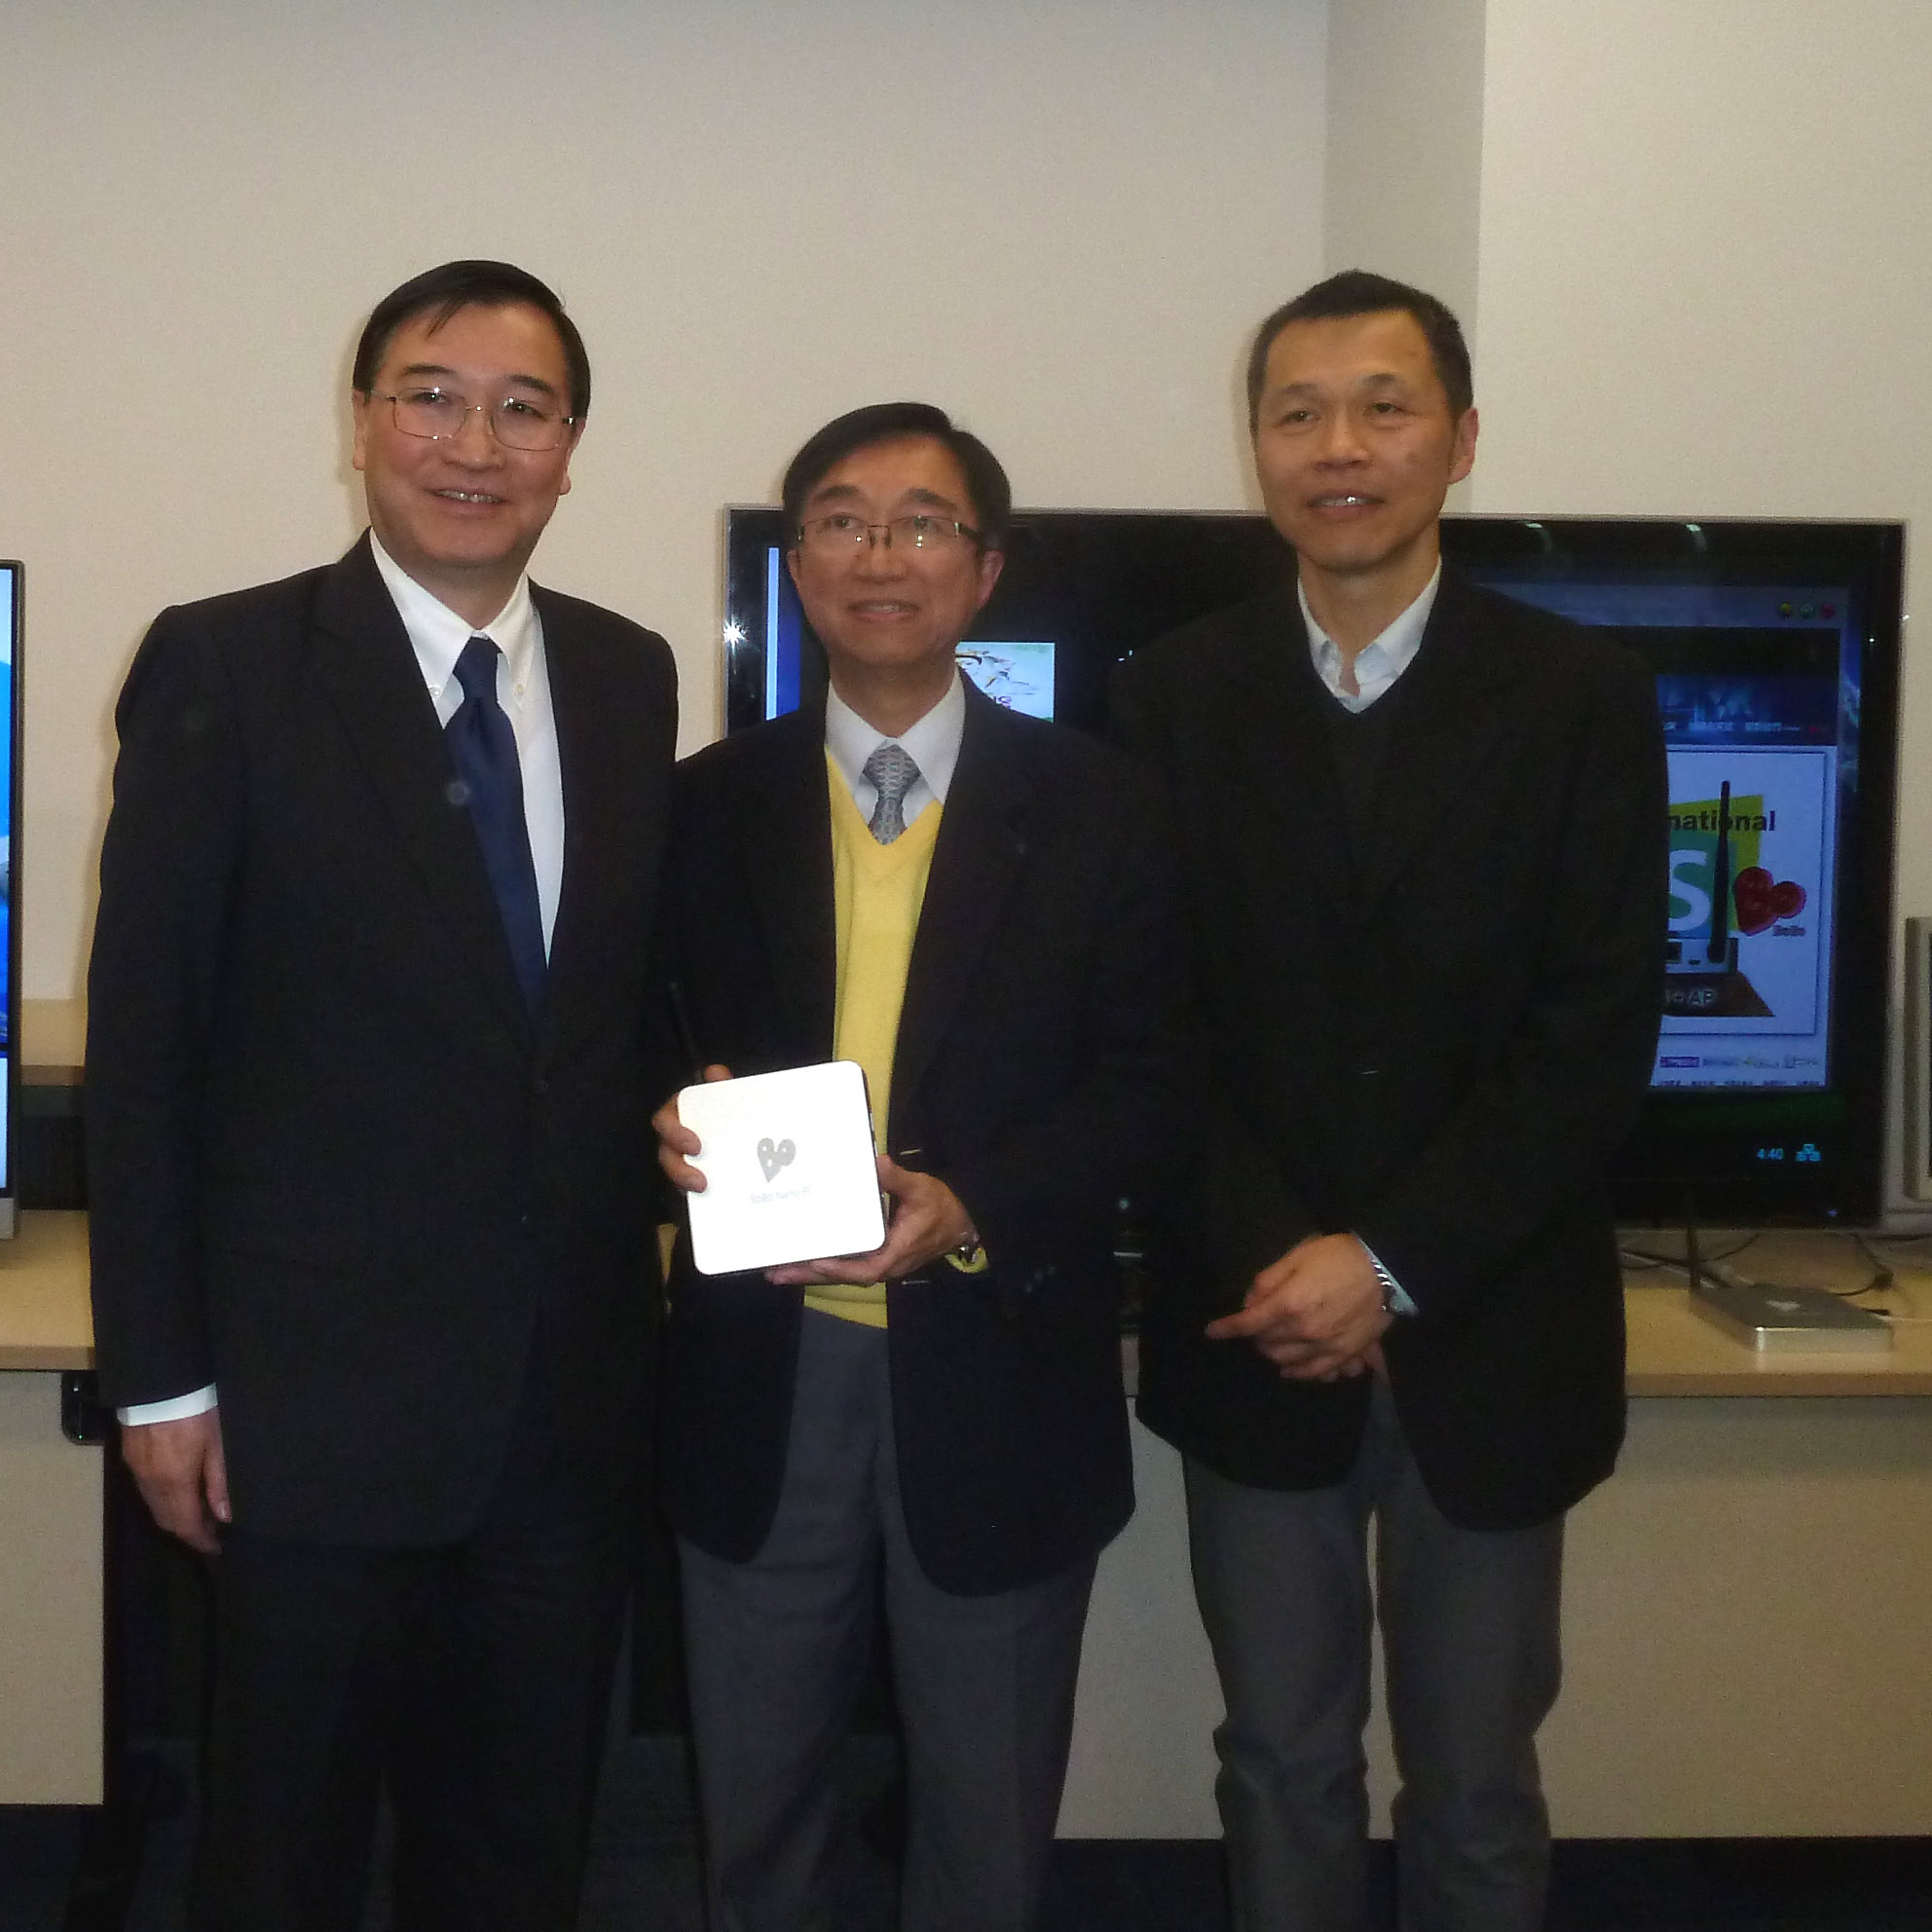 From left to right: Dr. Nim Kwan Cheung, CEO of ASTRI, Mr. Alan Kan, Dr. Jau Liu, Director of ECE, ASTRI